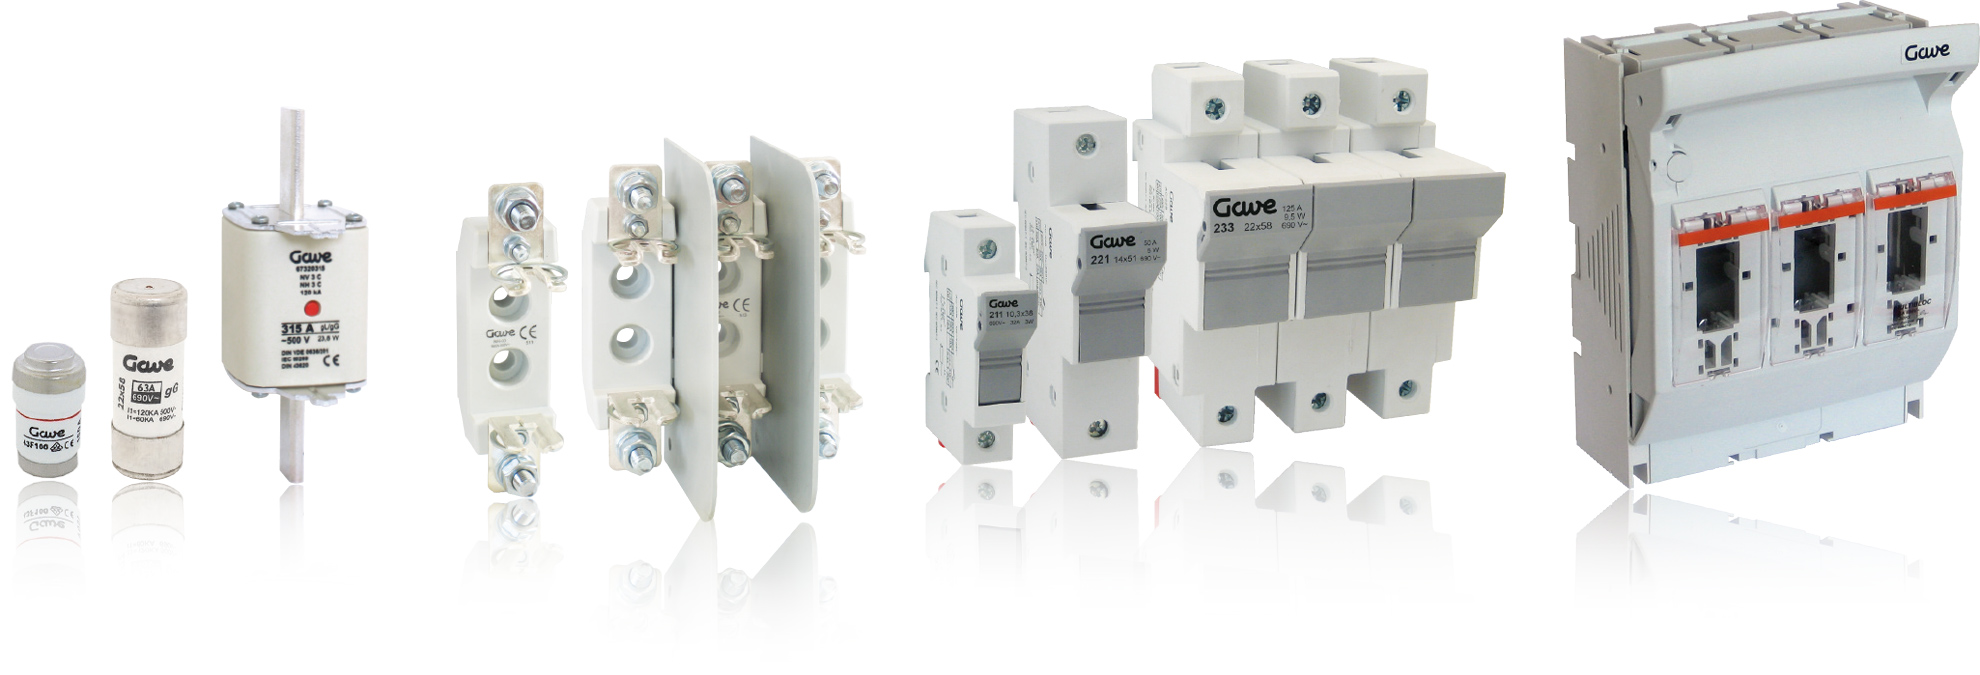 Gave Products Fuse Protection General Switch Breaker Box Fuses Range Overview Of